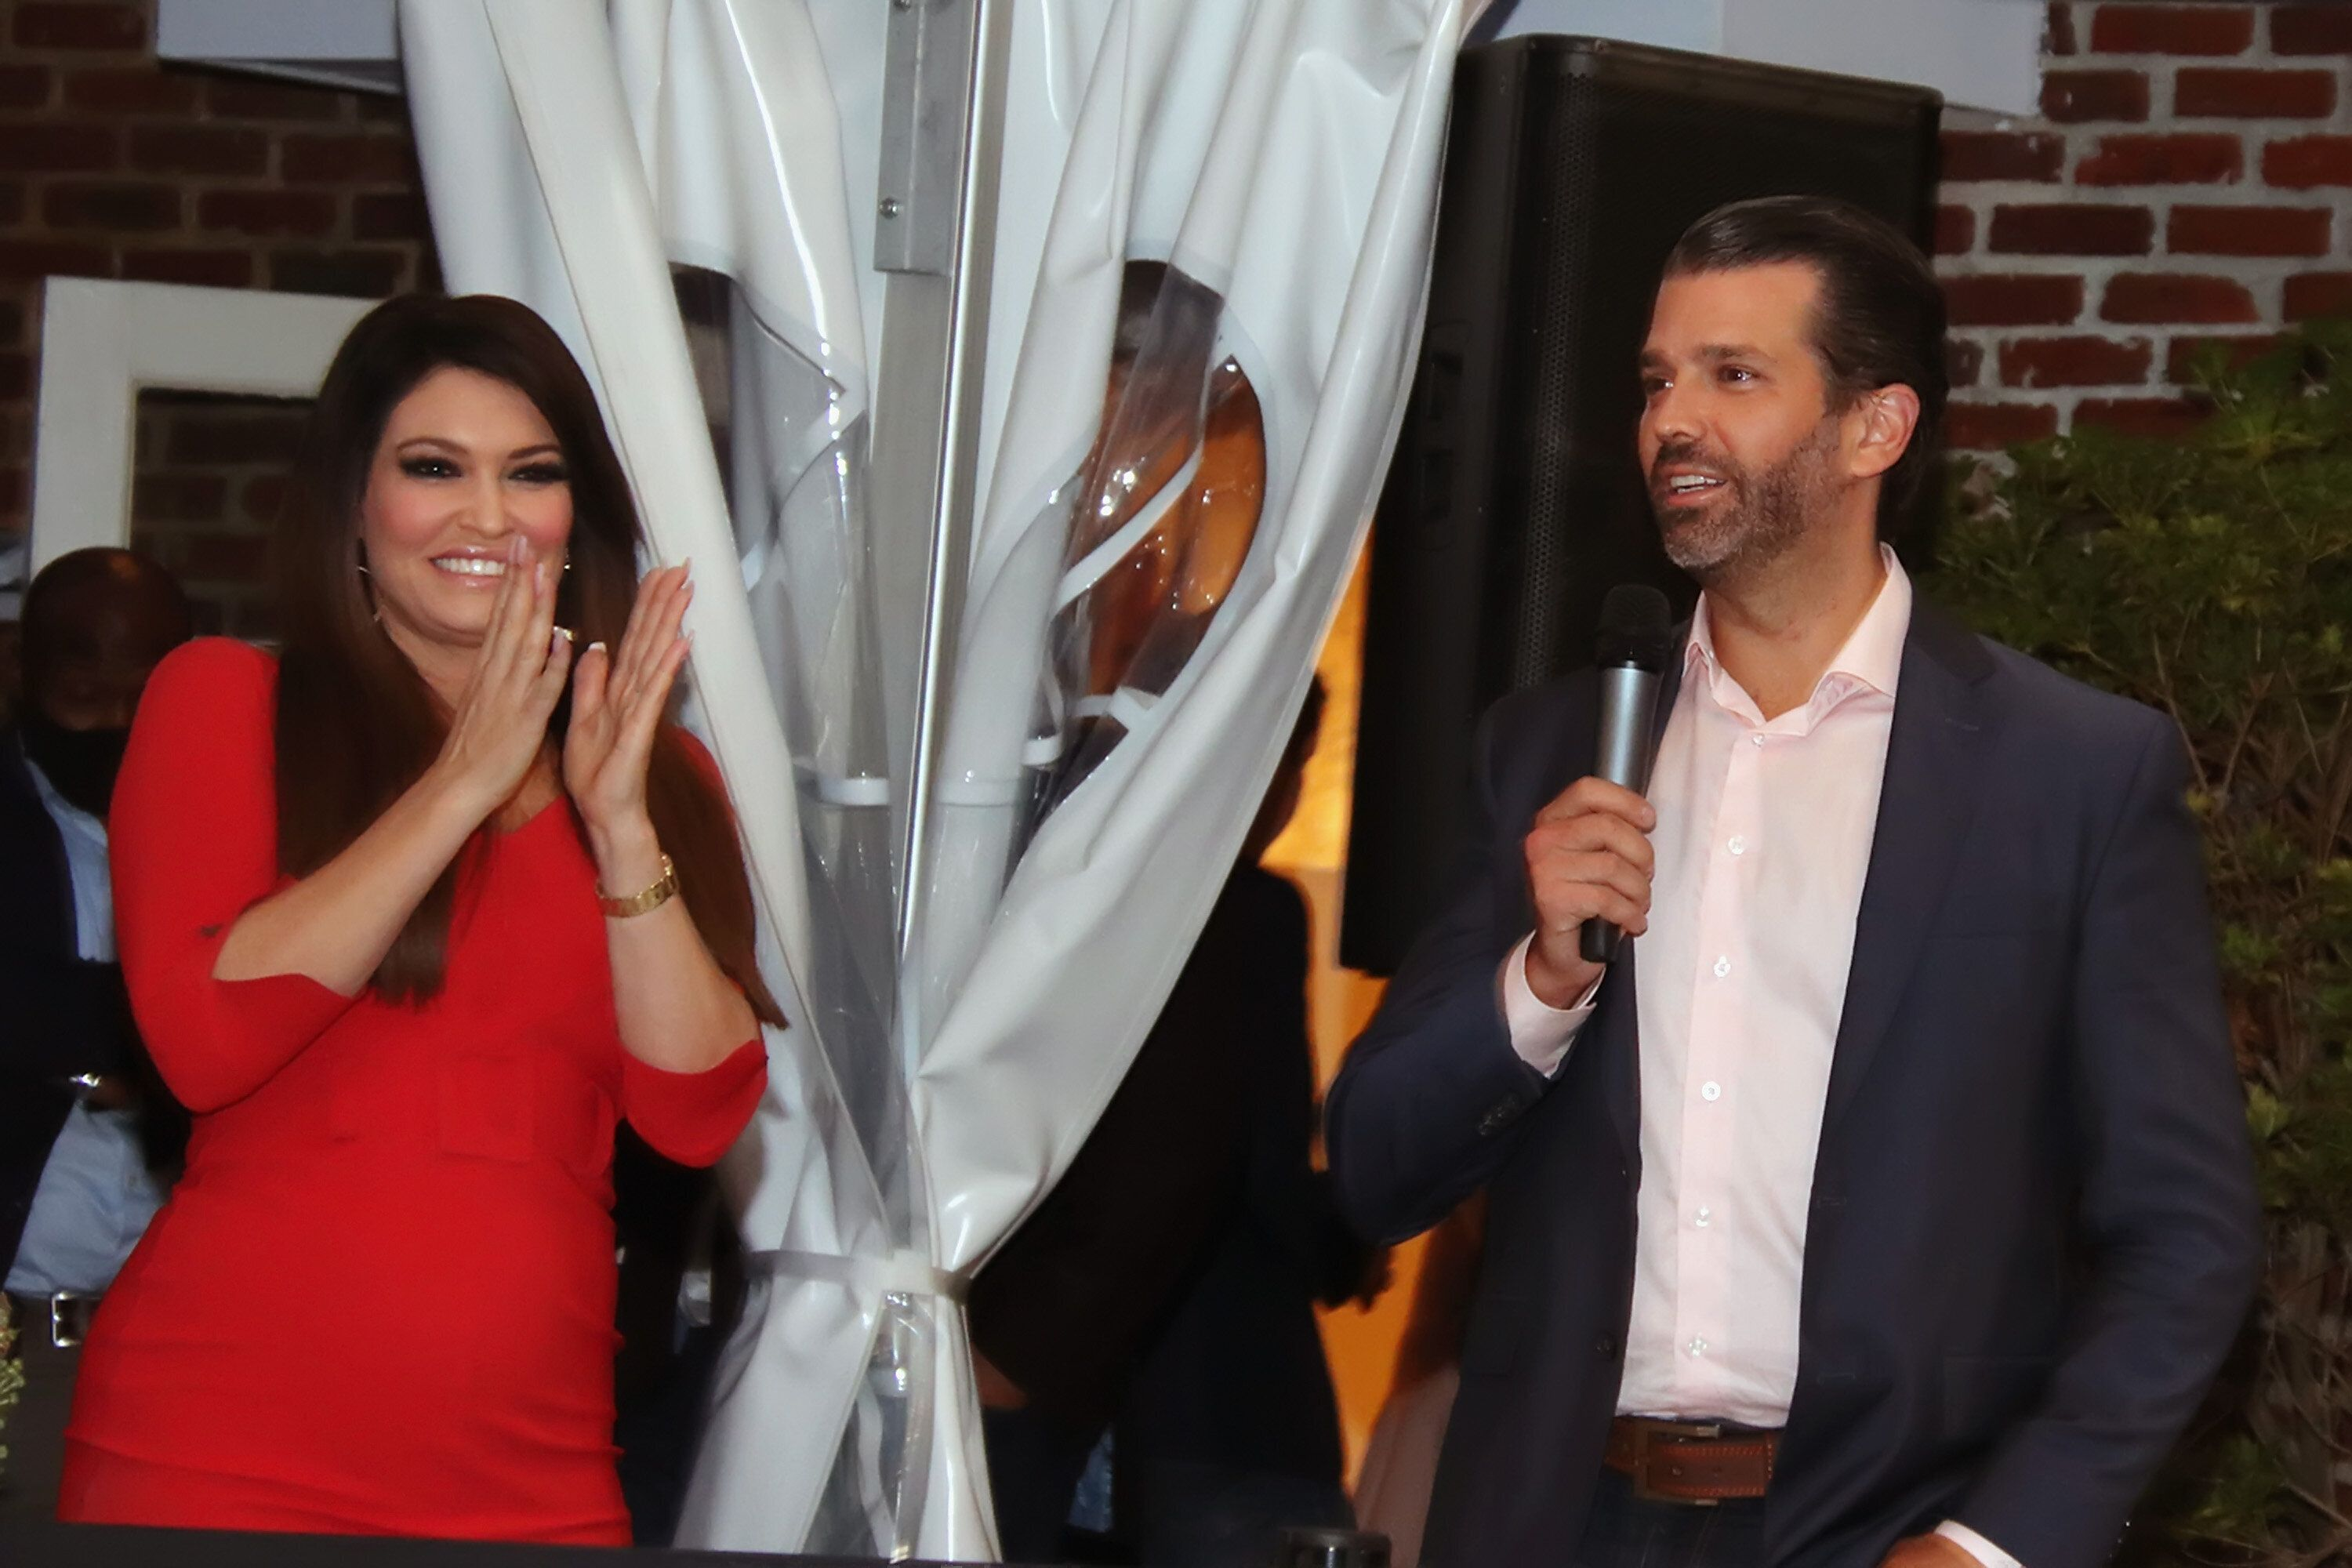 Trump campaign adviser Kimberly Guilfoyle, who is also the girlfriend of Donald Trump Jr., has appeared on OAN and Newsmax to